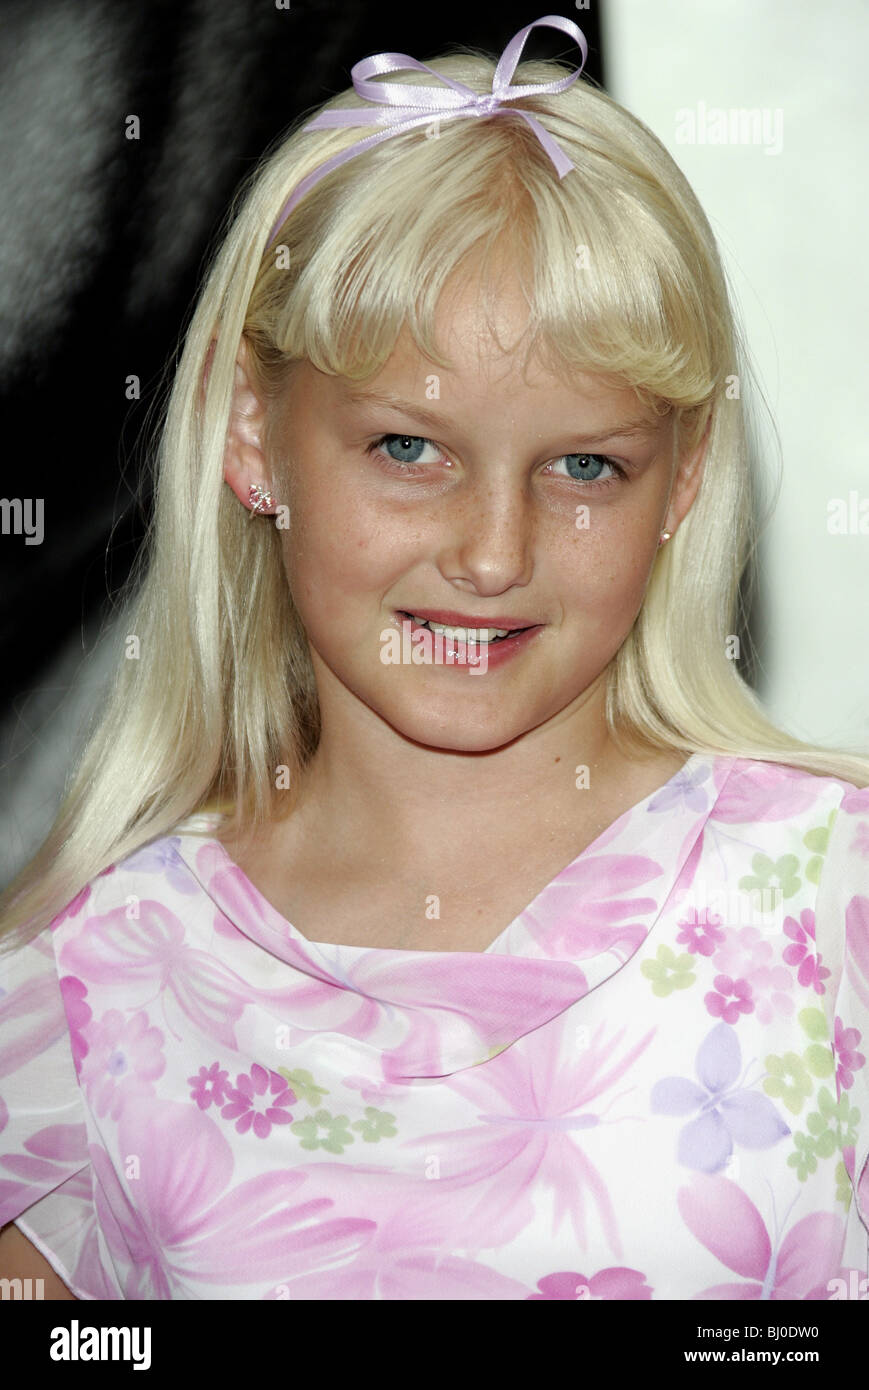 bree seanna wall wikibree seanna wall now, bree seanna wall wiki, bree seanna wall today, bree seanna wall imdb, bree seanna wall 2017, bree seanna wall 2016, bree seanna wall biography, bree seanna wall pictures, bree seanna wall facebook, bree seanna wall actress, bree seanna wall photos, bree seanna wall instagram, what happened to bree seanna wall, bree seanna wall where is she now